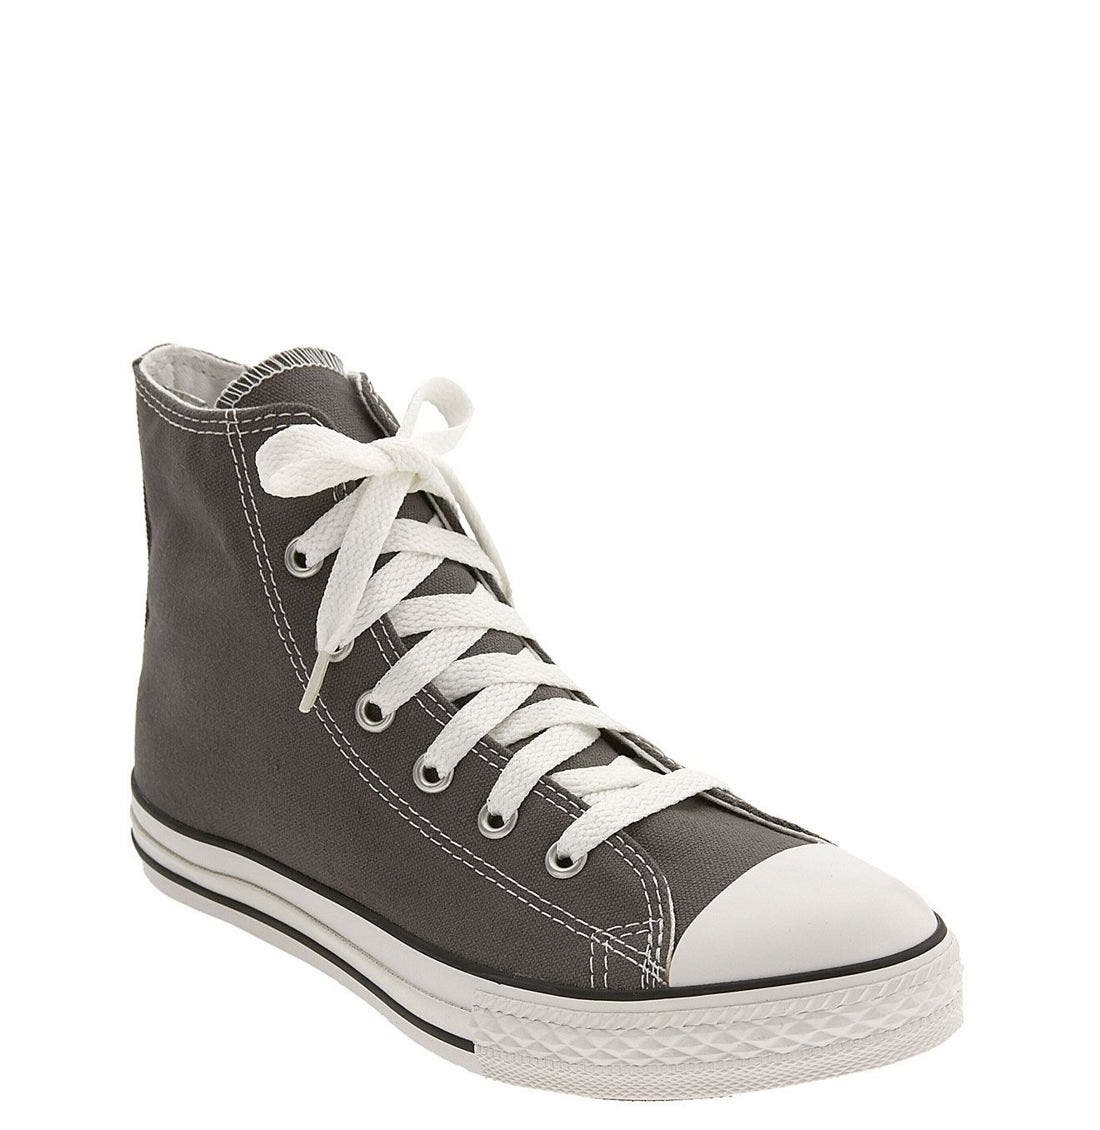 Main Image - Converse Chuck Taylor® High Top Sneaker (Baby, Walker & Toddler)